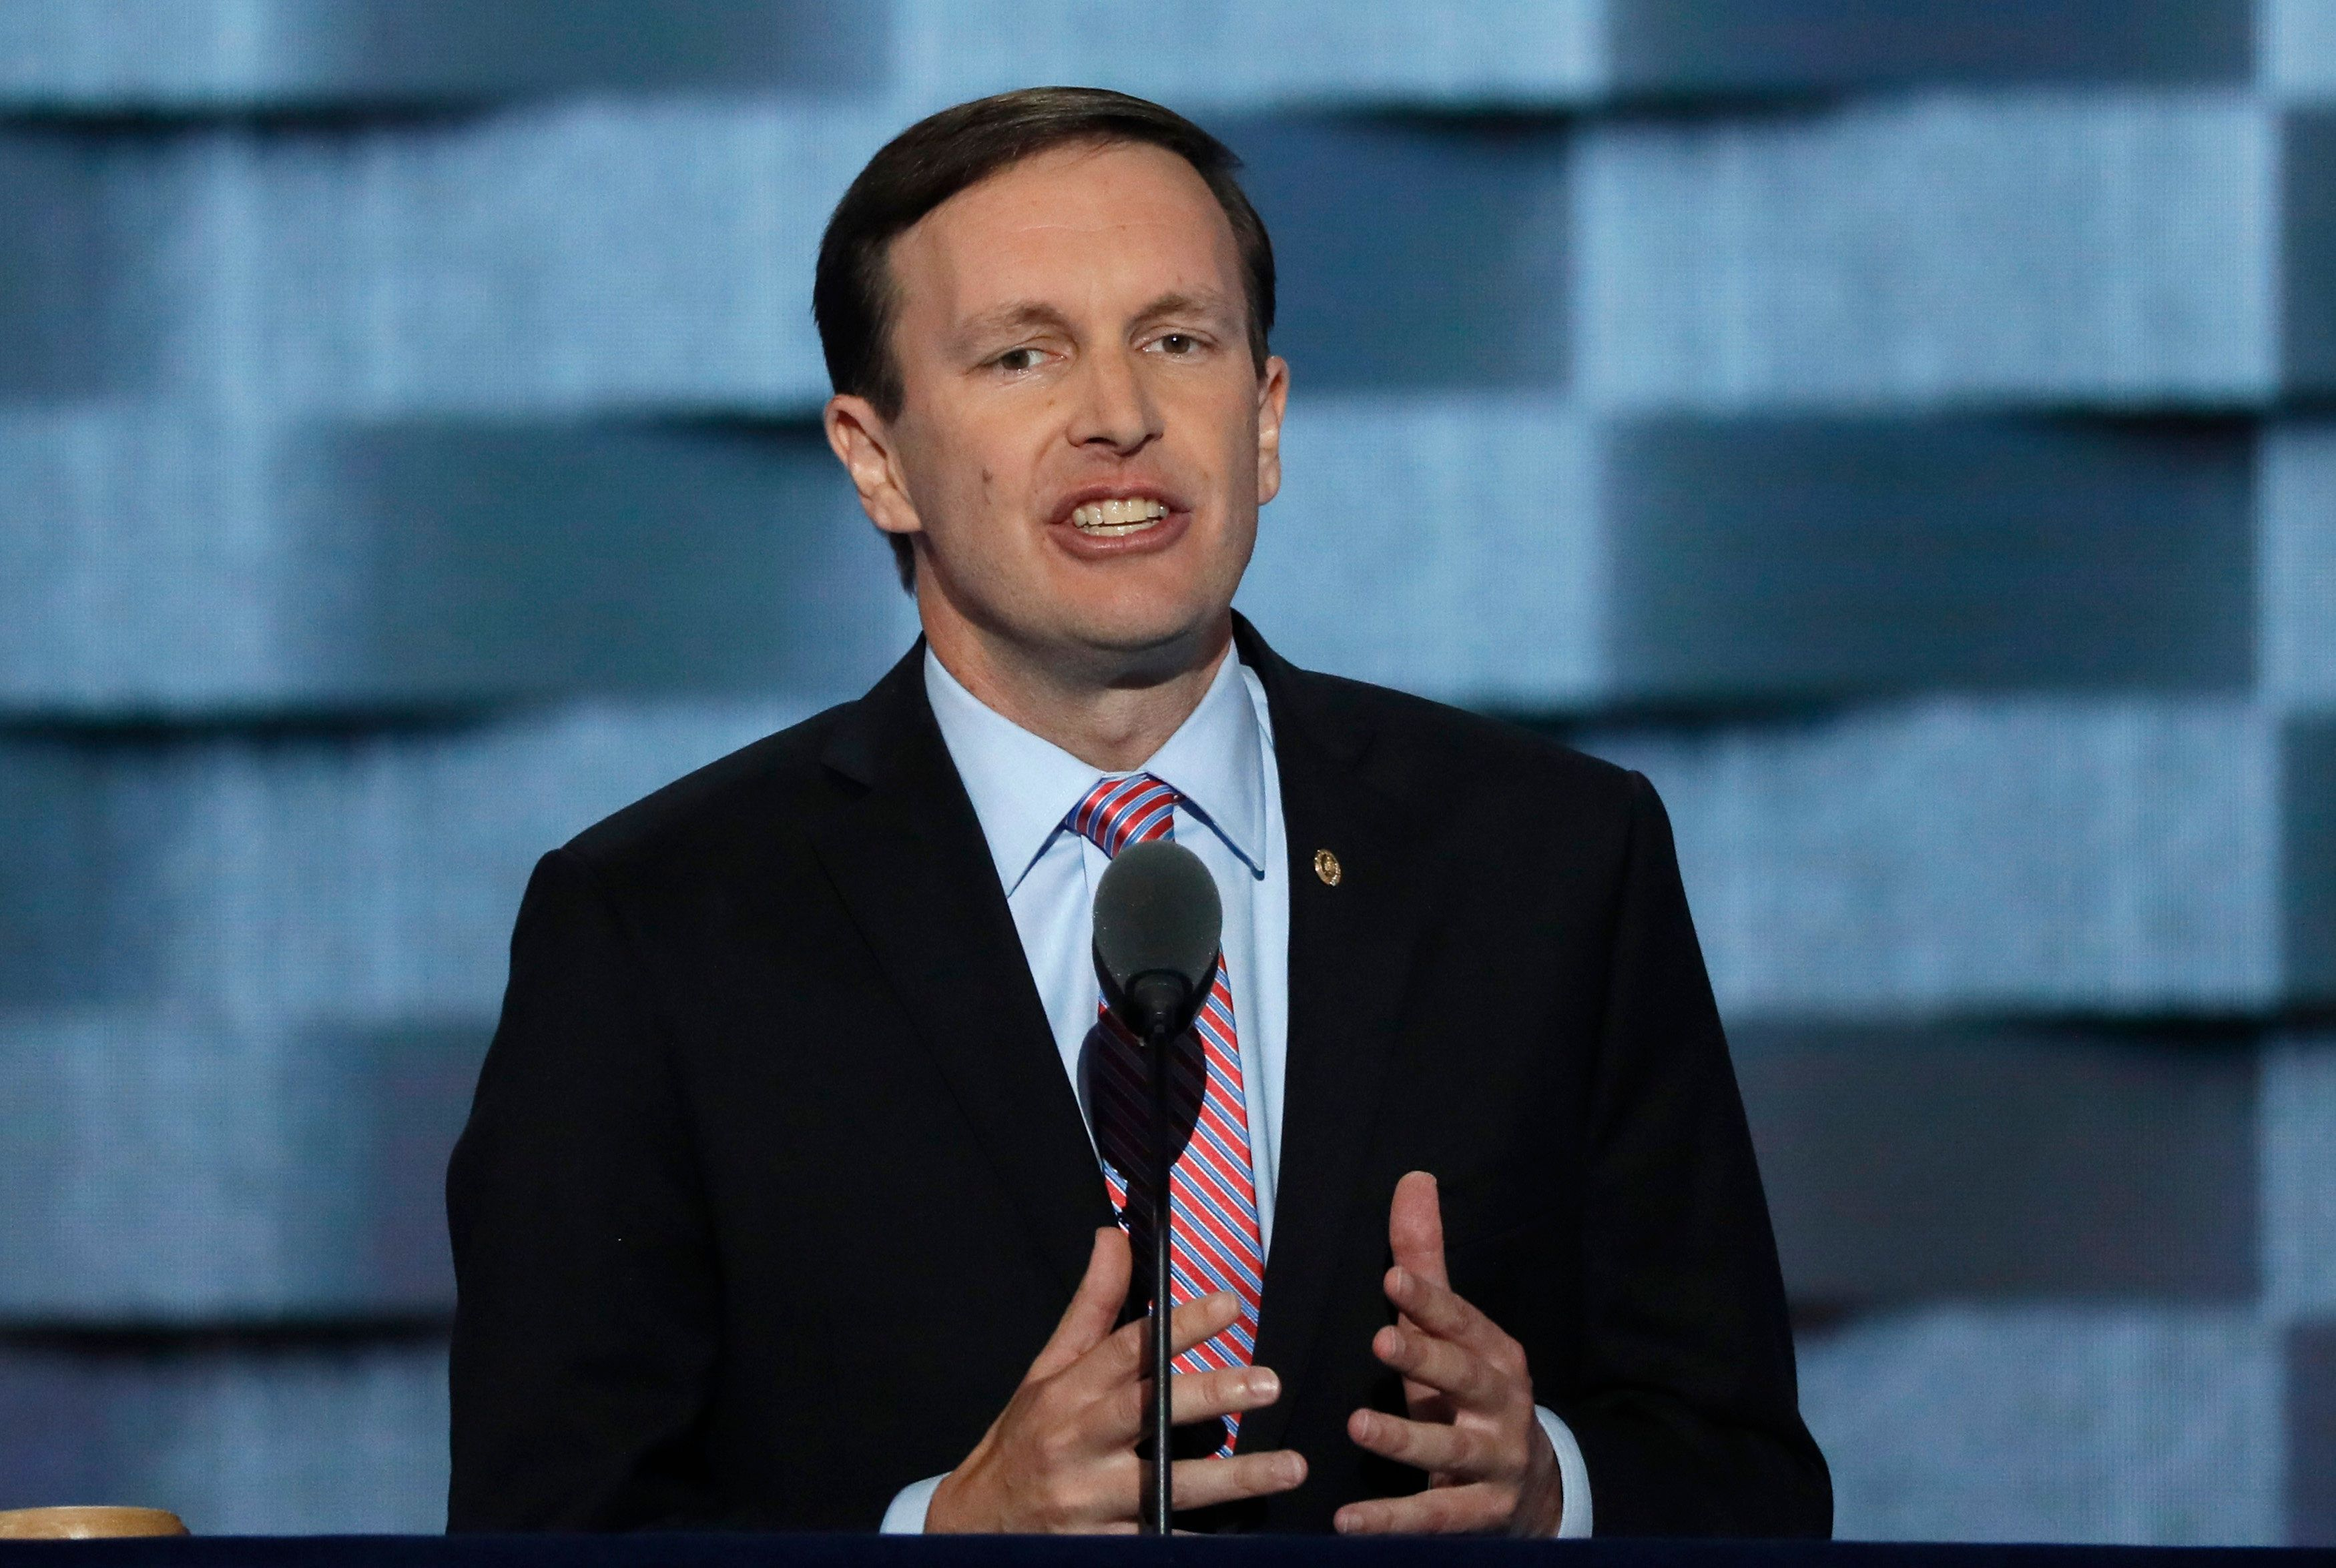 U.S. Senator Chris Murphy (D-CT) speaks on the third day of the Democratic National Convention in Philadelphia, Pennsylvania, U.S. July 27, 2016. REUTERS/Mike Segar